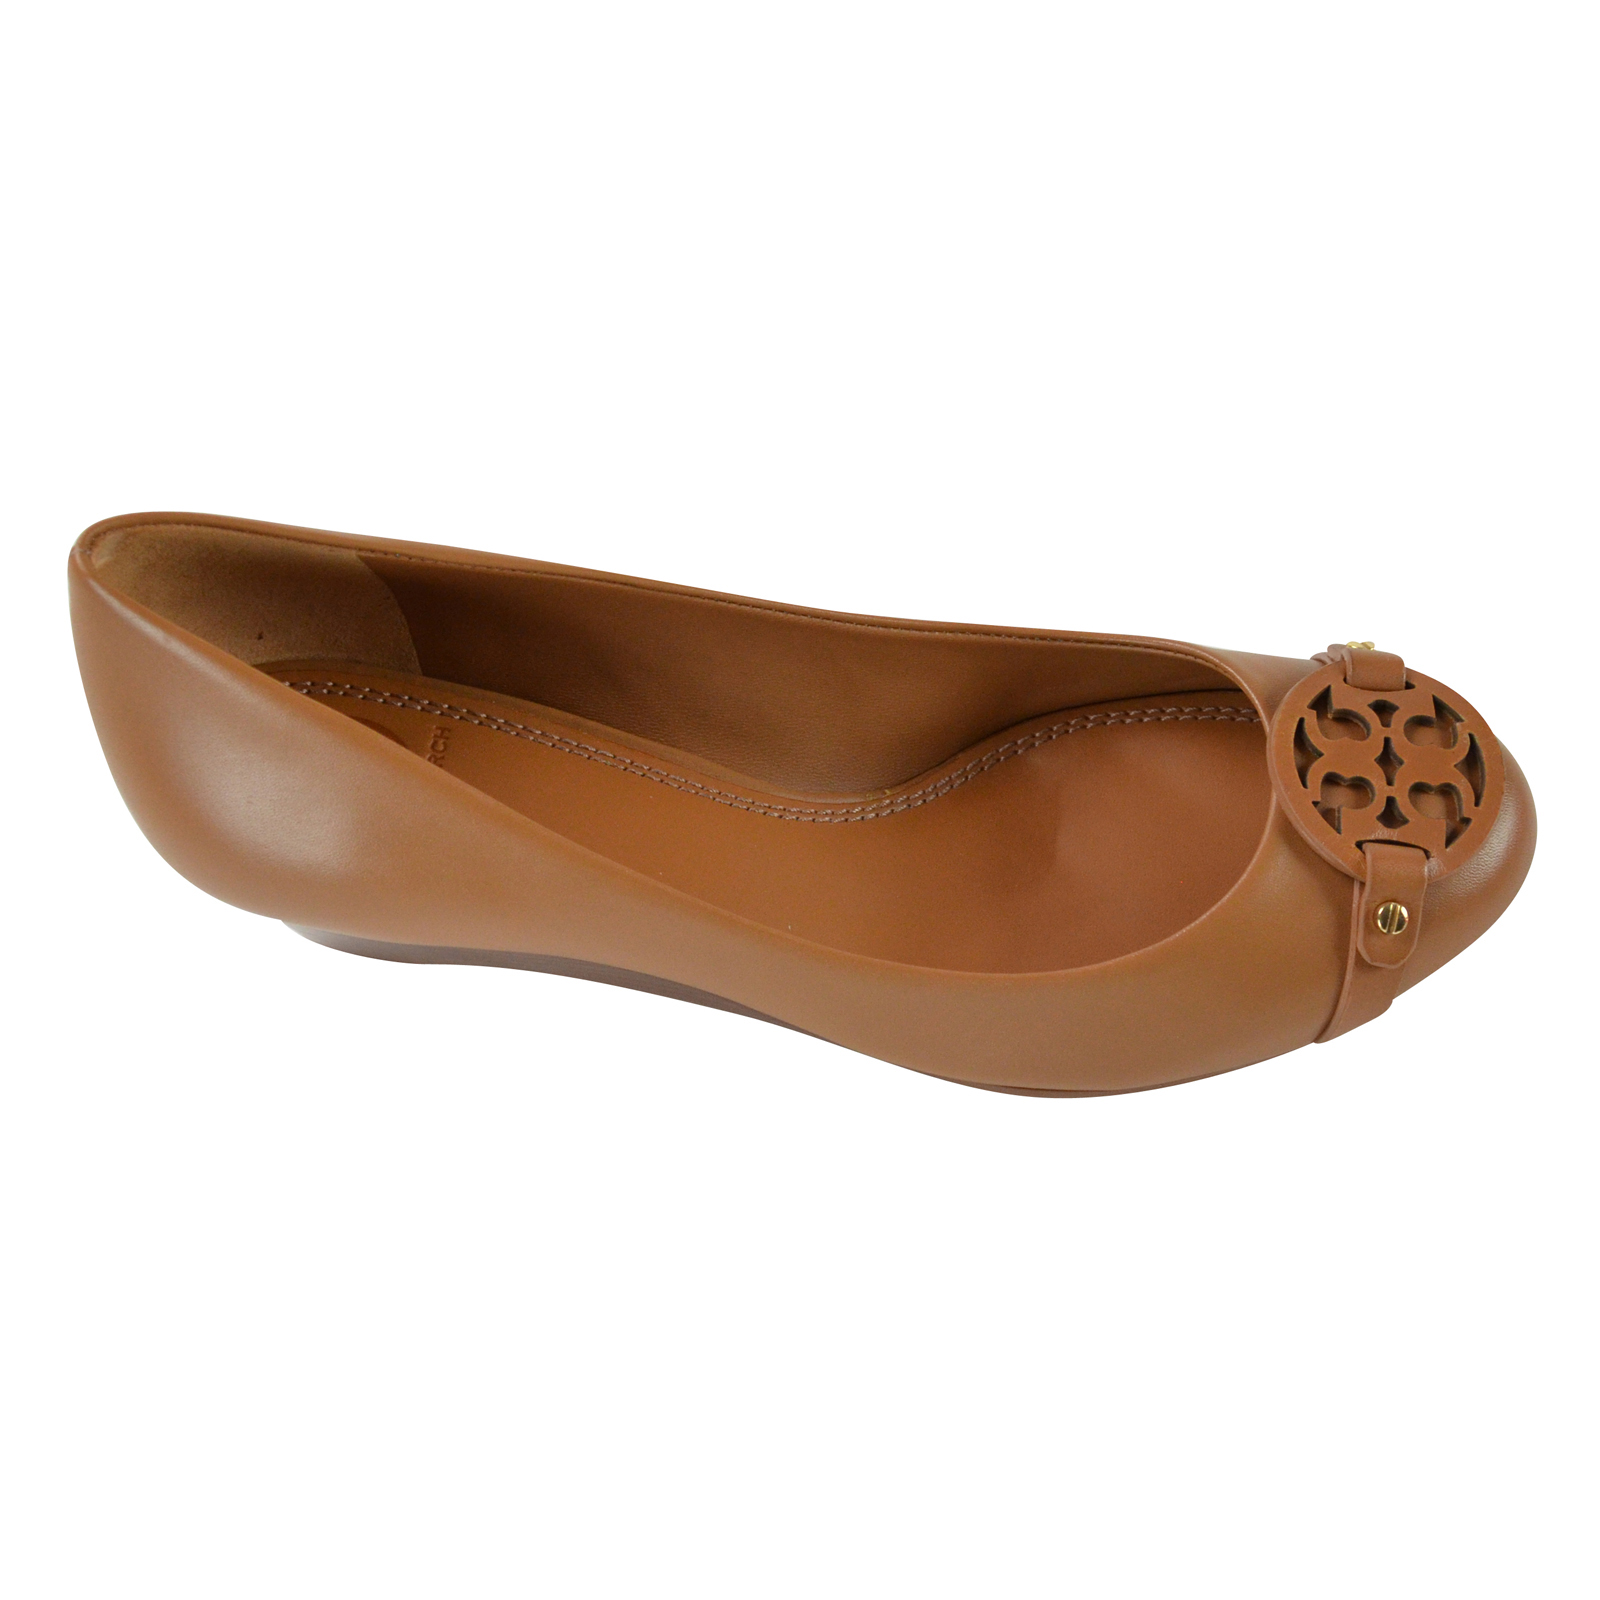 97396d2590b NIB Tory Burch Mini Miller 45MM Wedge Shoes Nappa Leather Pick a ...